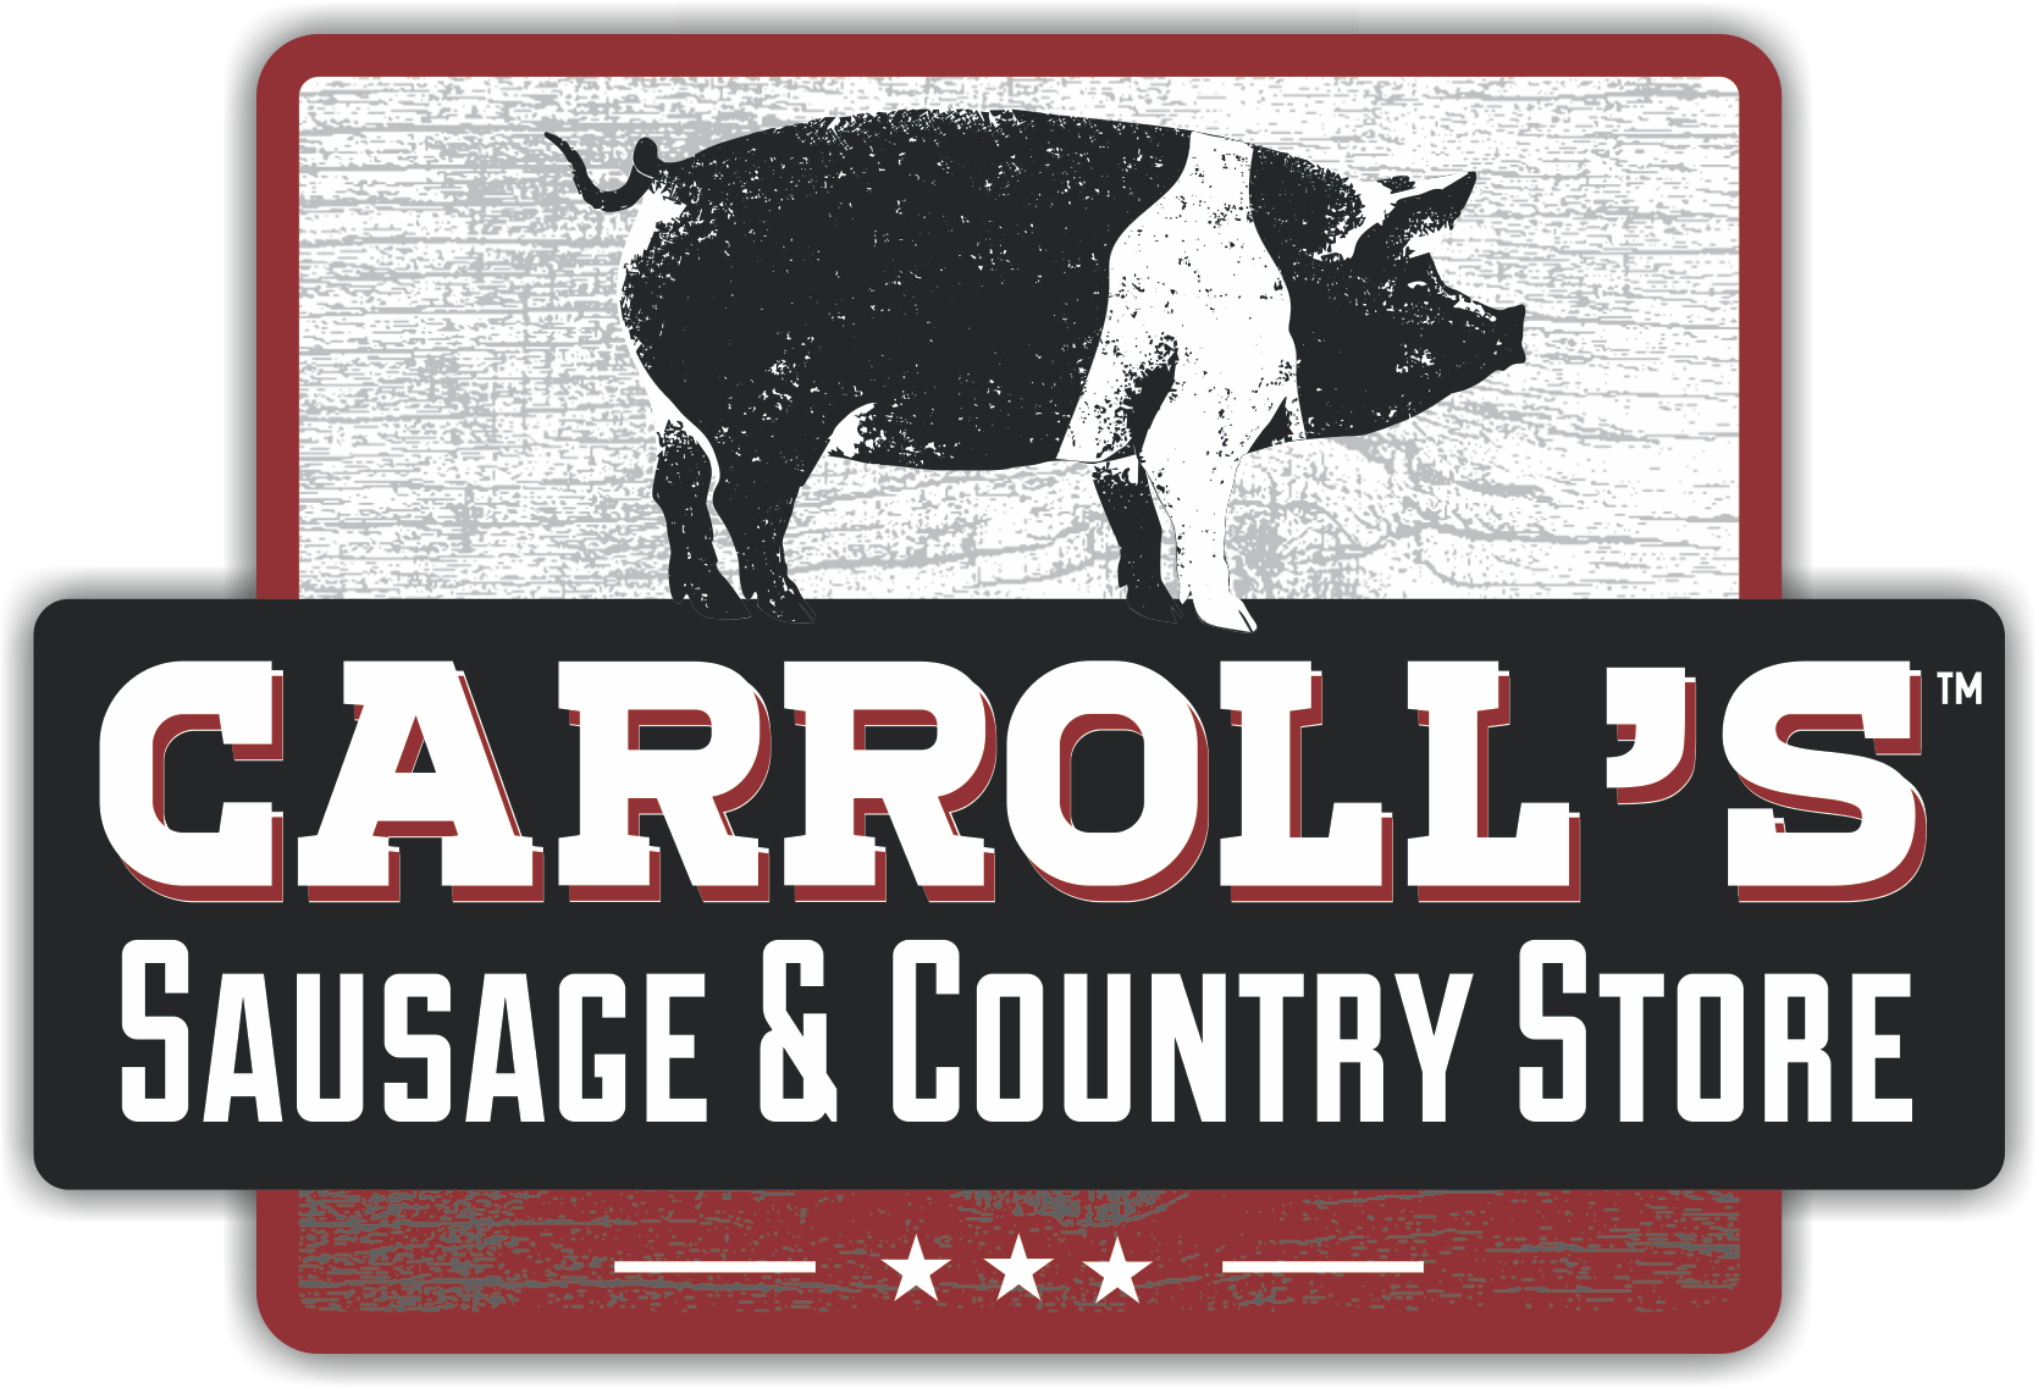 Carroll's™ Sausage & Country Store